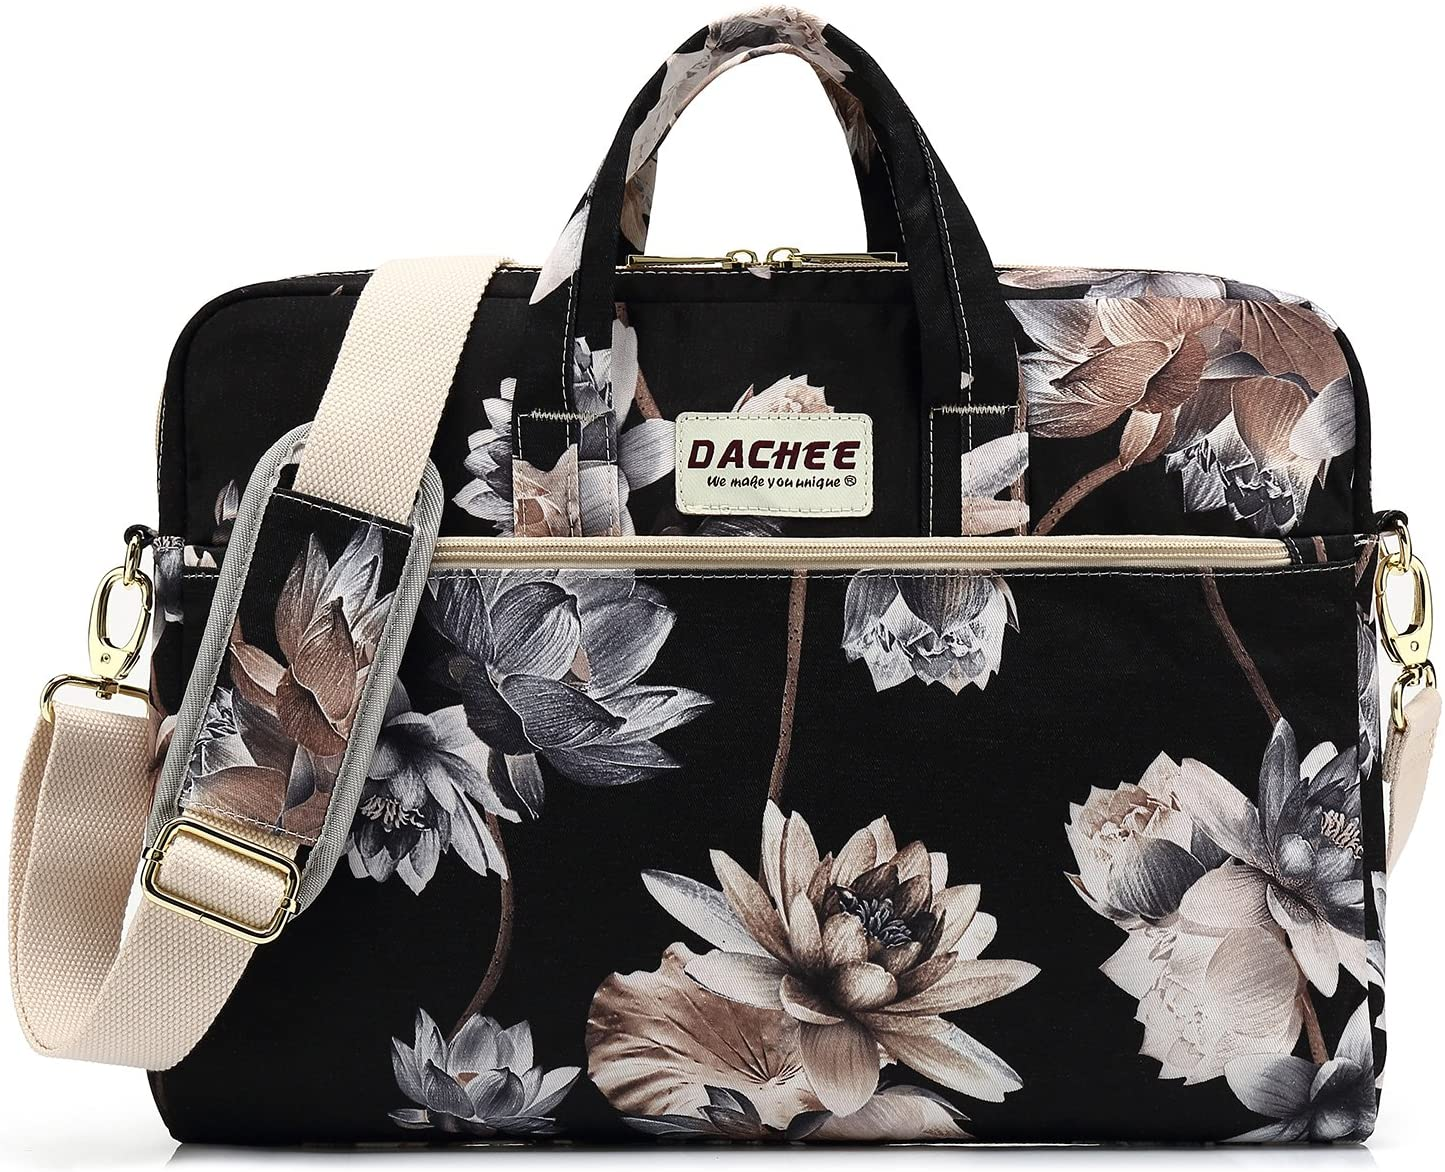 DACHEE Black Lotus Pattern 15 inch Waterproof Laptop Shoulder Messenger Bag for 14 Inch to15.6 inch Laptop and Macbook Pro 15 laptop Case